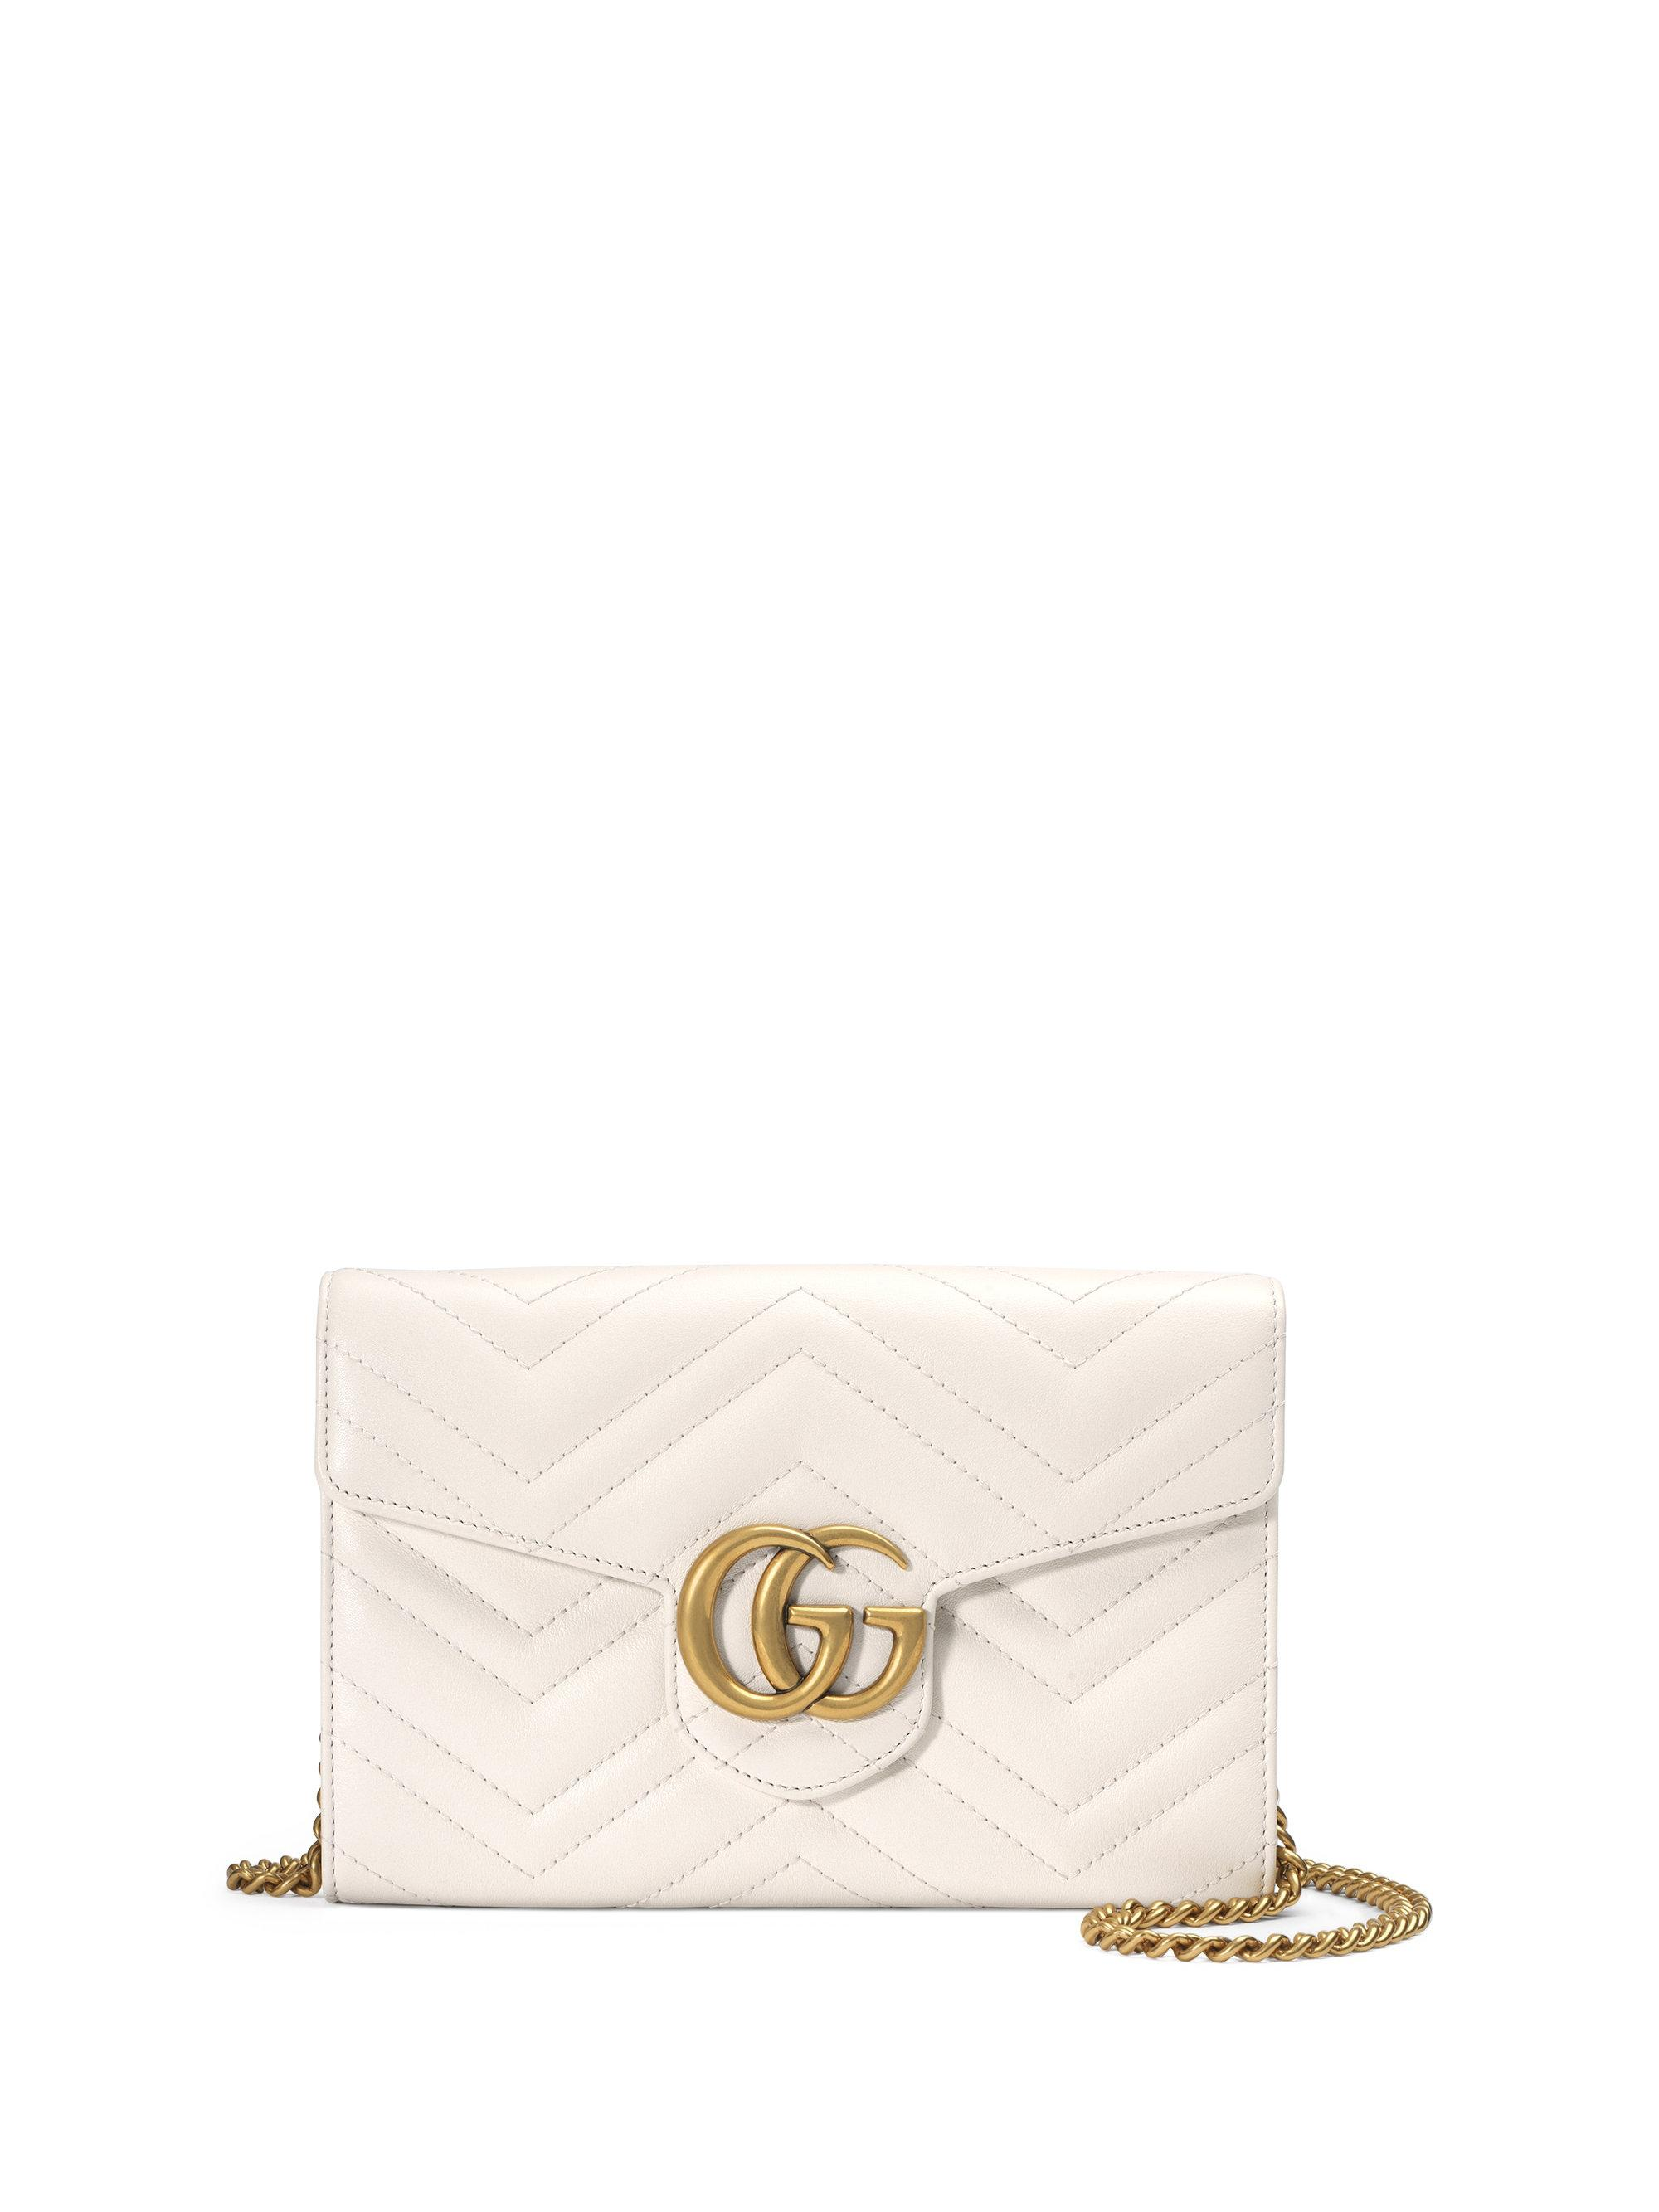 c9491704aa0d60 Gucci Gg Marmont Matelassé Leather Chain Wallet in White - Lyst